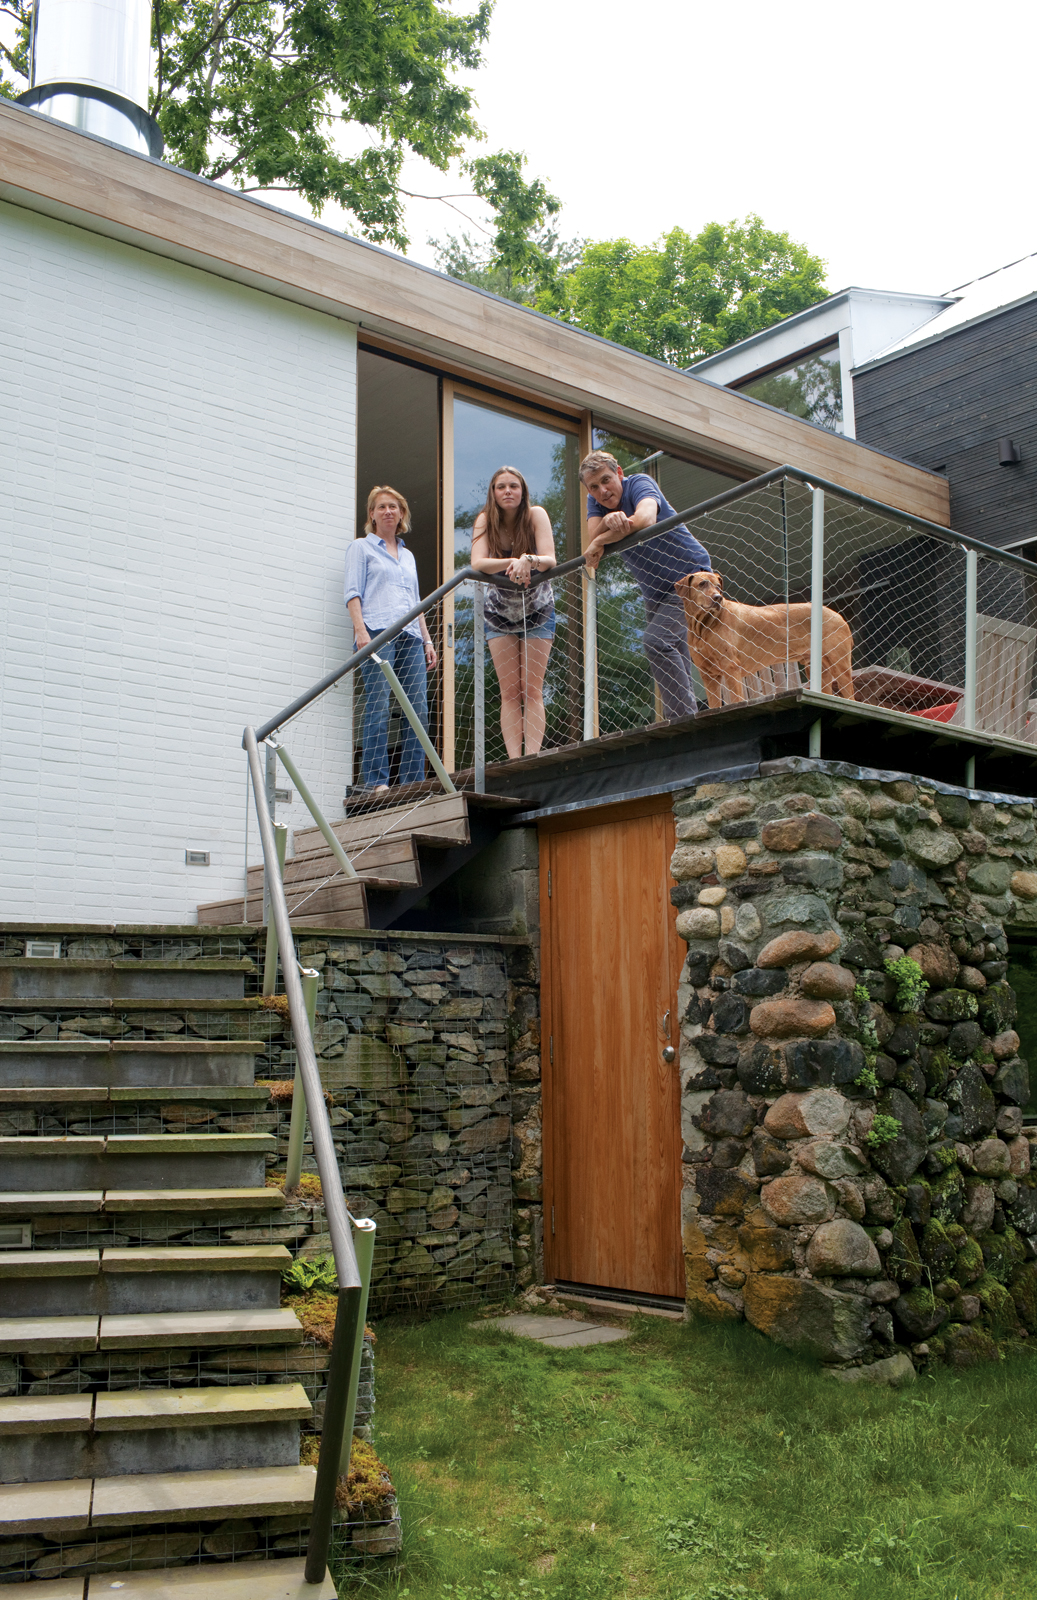 Modern outdoor staircase area with gabion walls